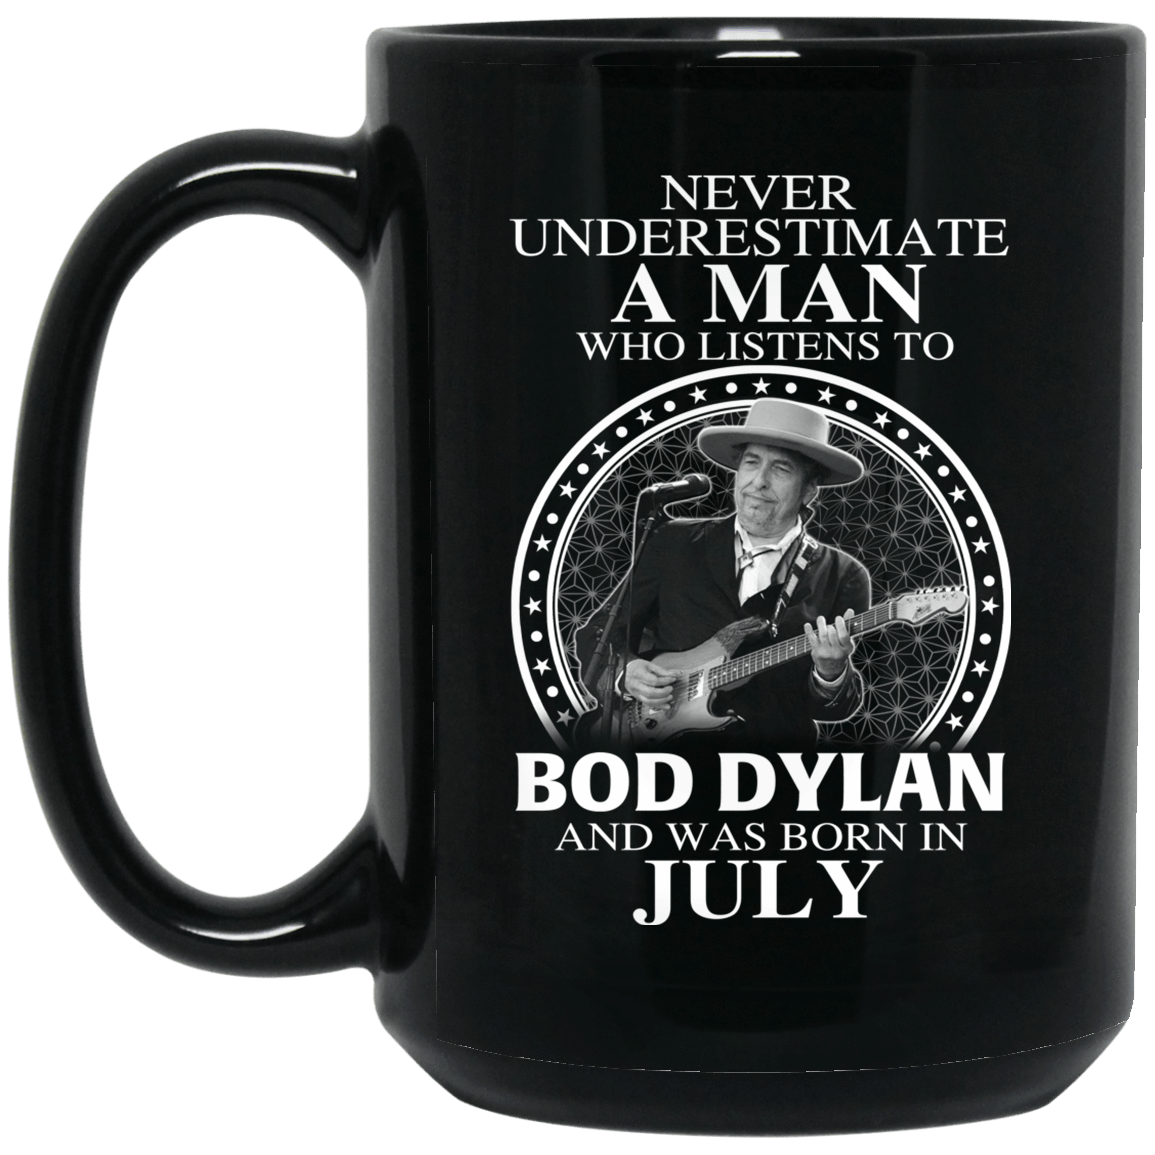 A Man Who Listens To Bob Dylan And Was Born In July Mug 1066-10182-76153606-49311 - Tee Ript